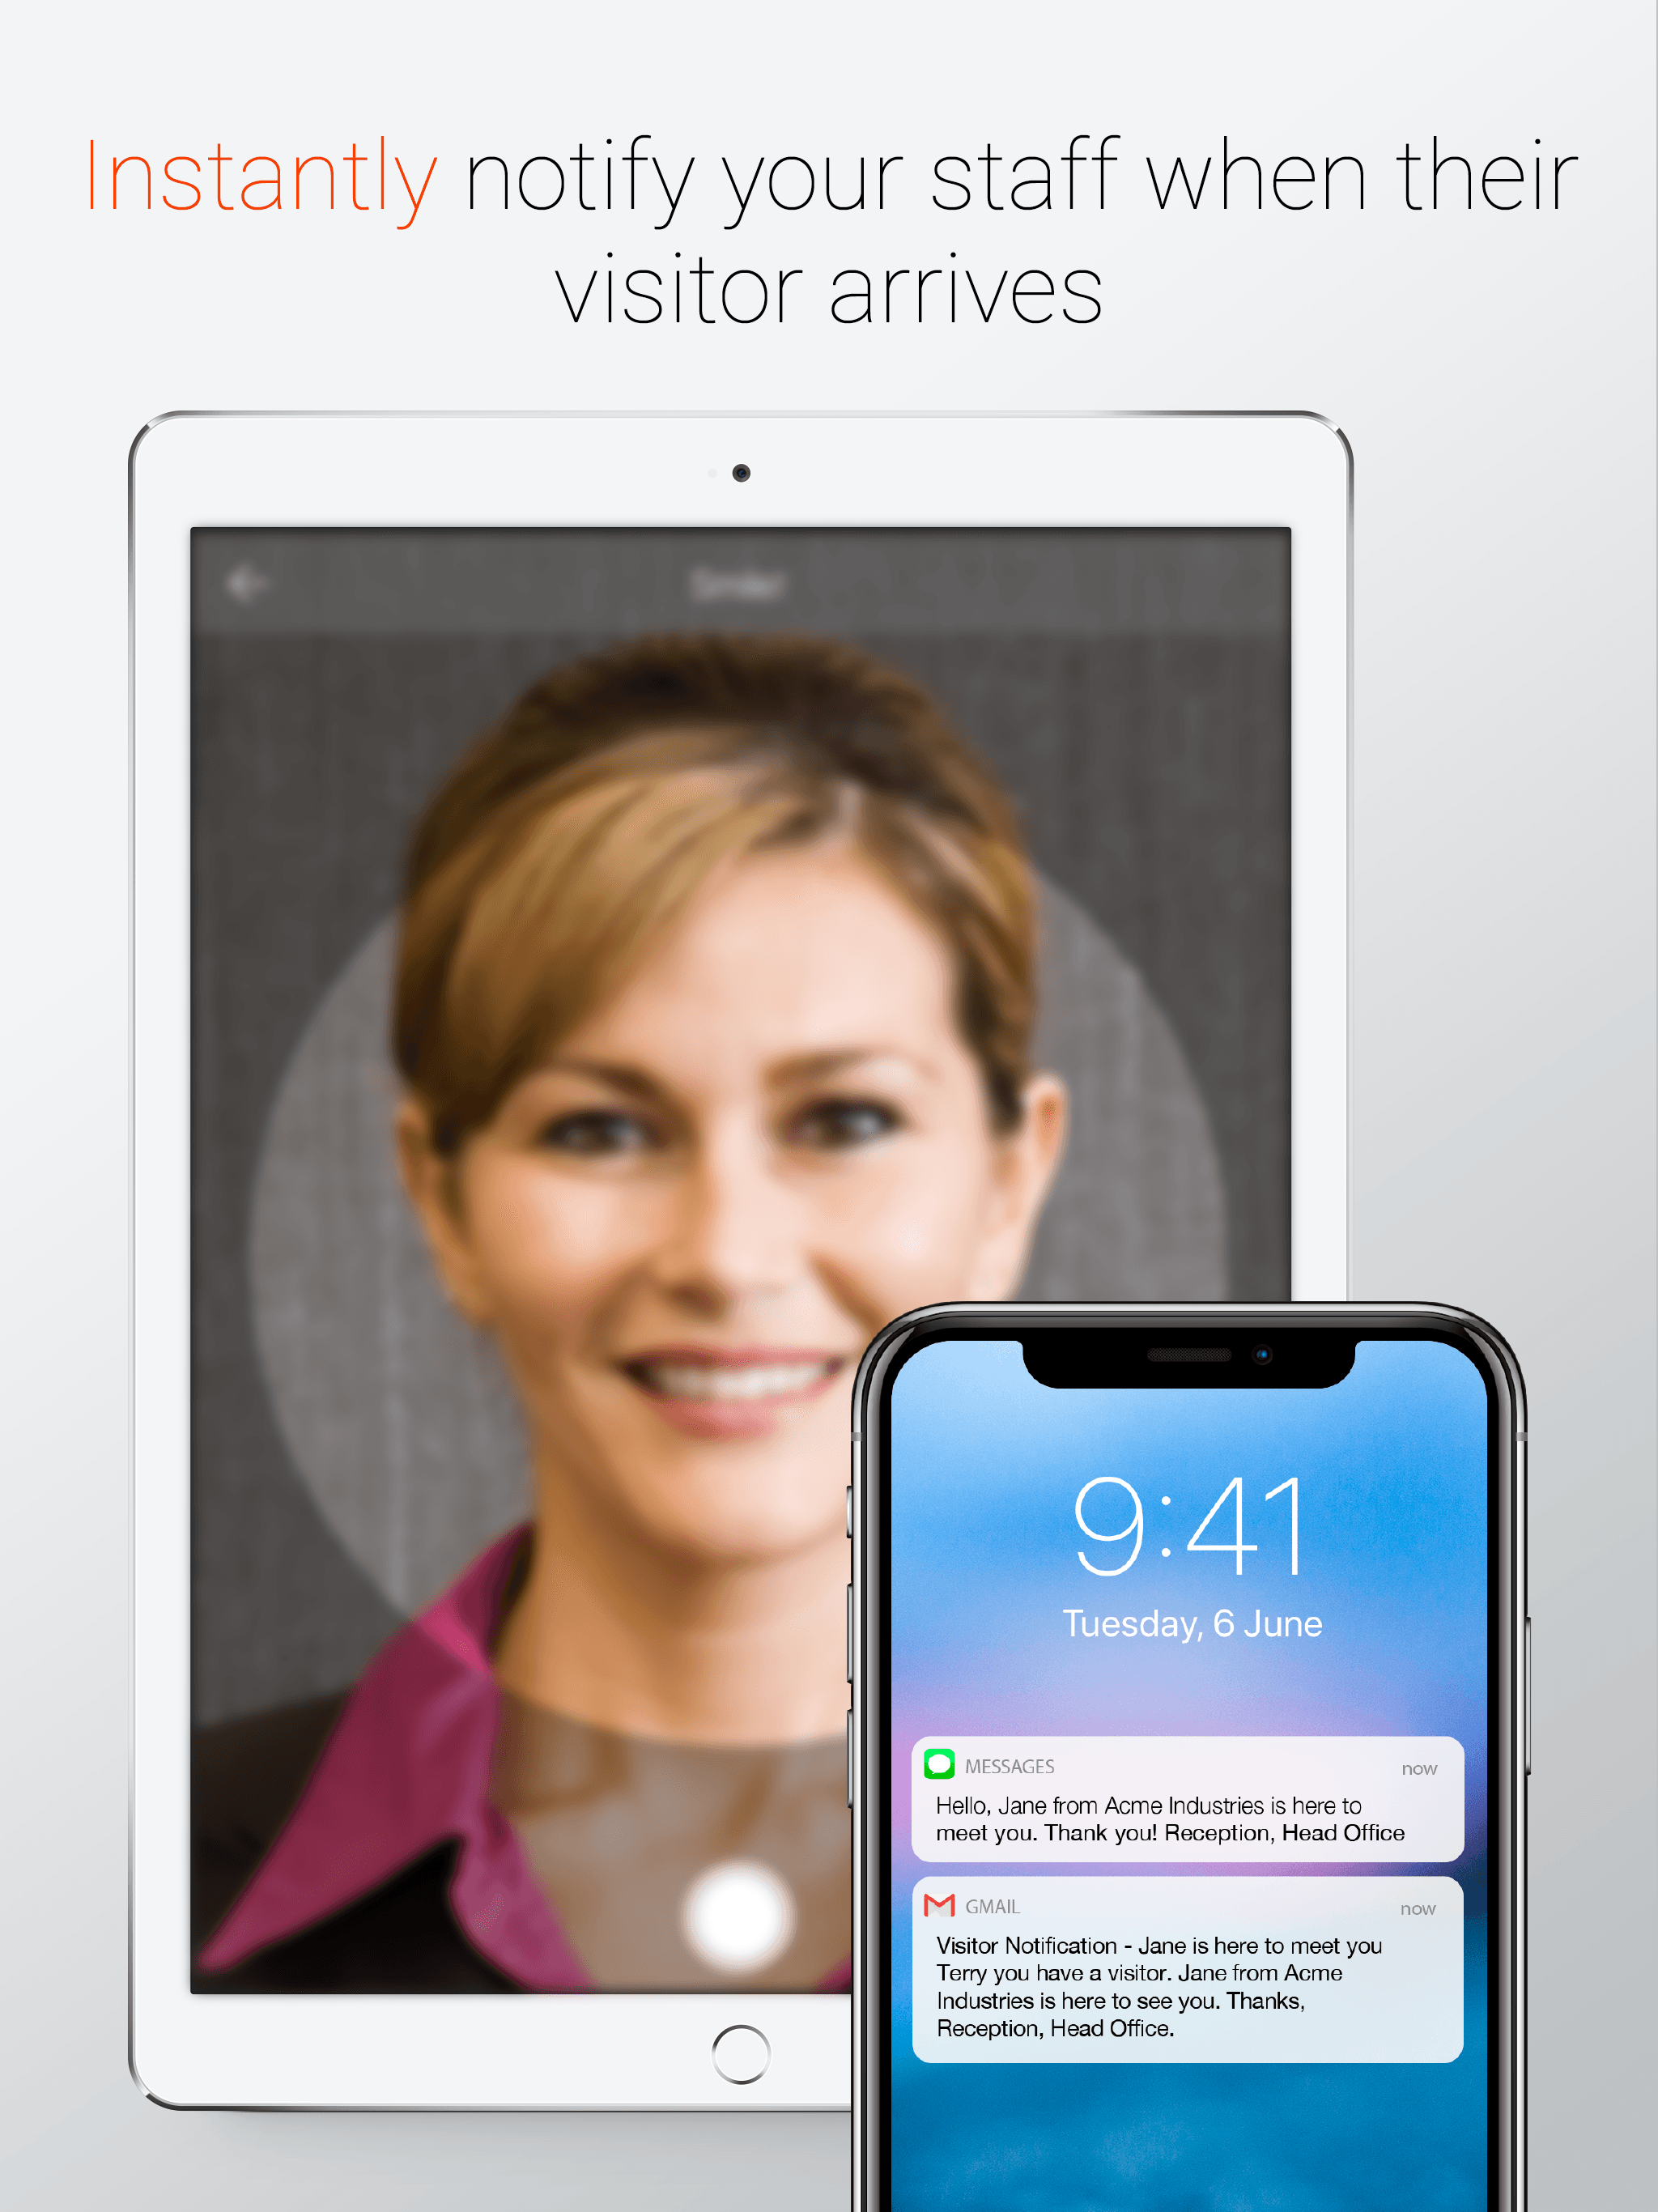 Instant notifications that a visitor has arrived